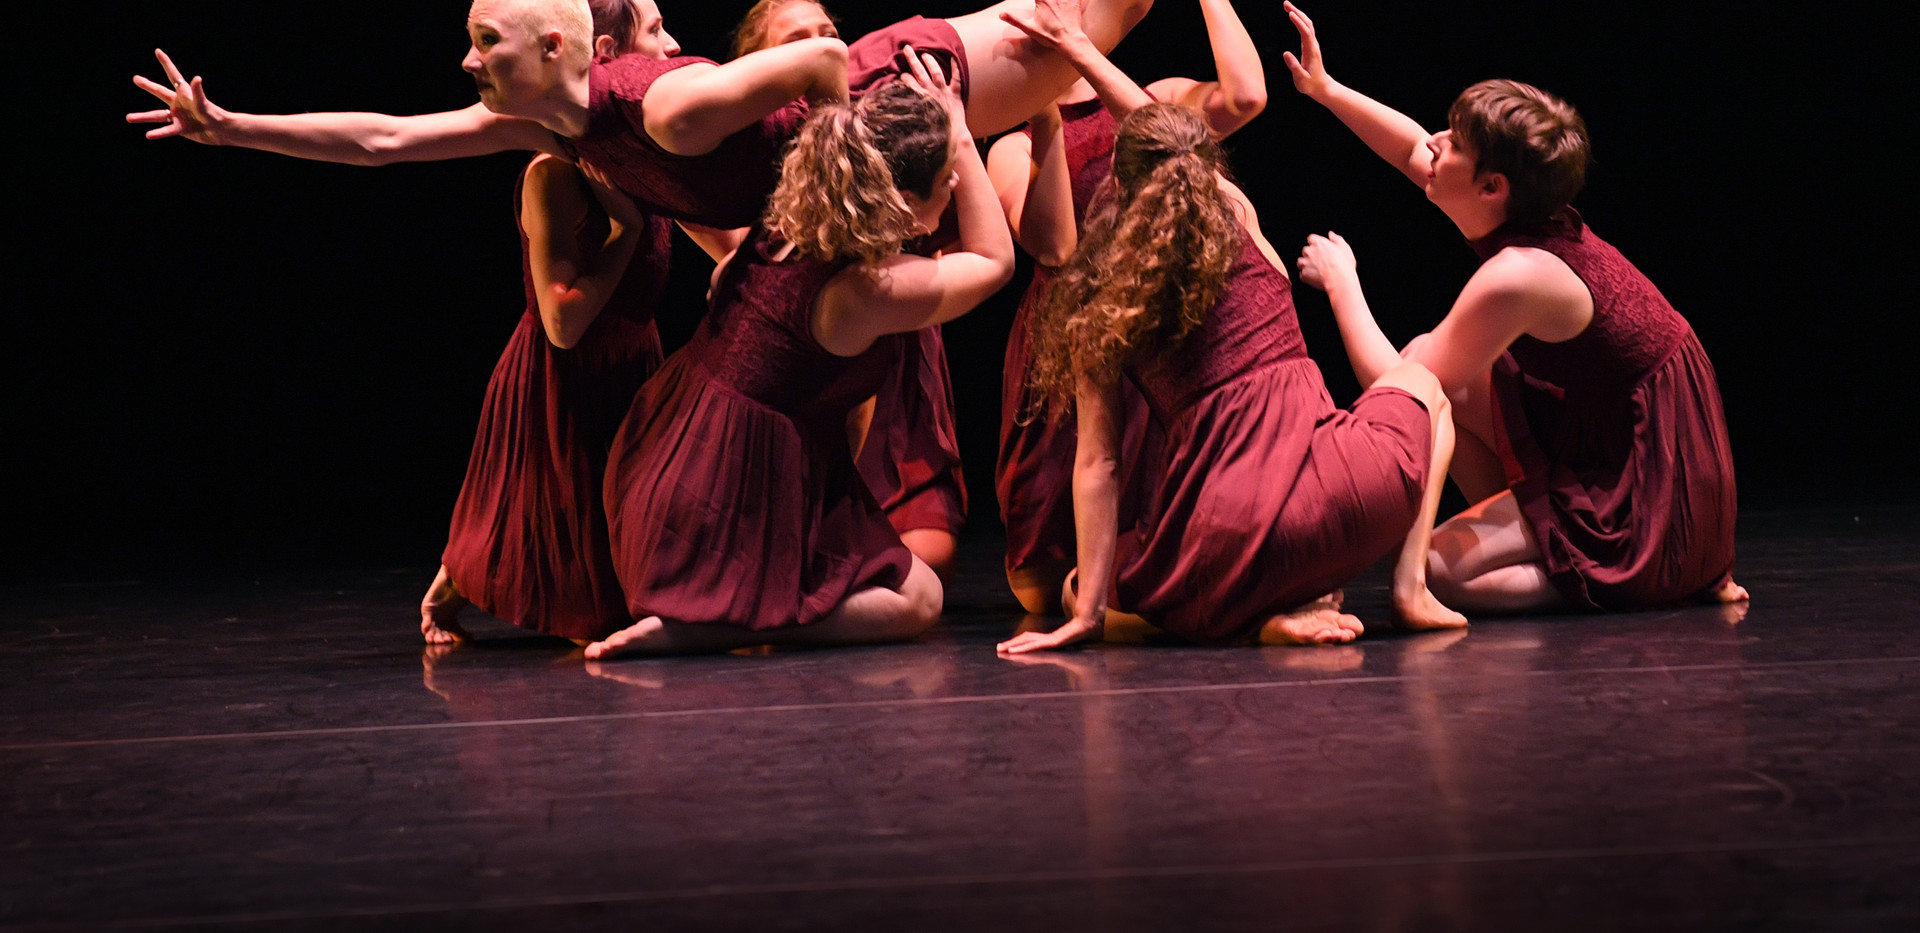 Mattidance at McCallum Choreography Festival